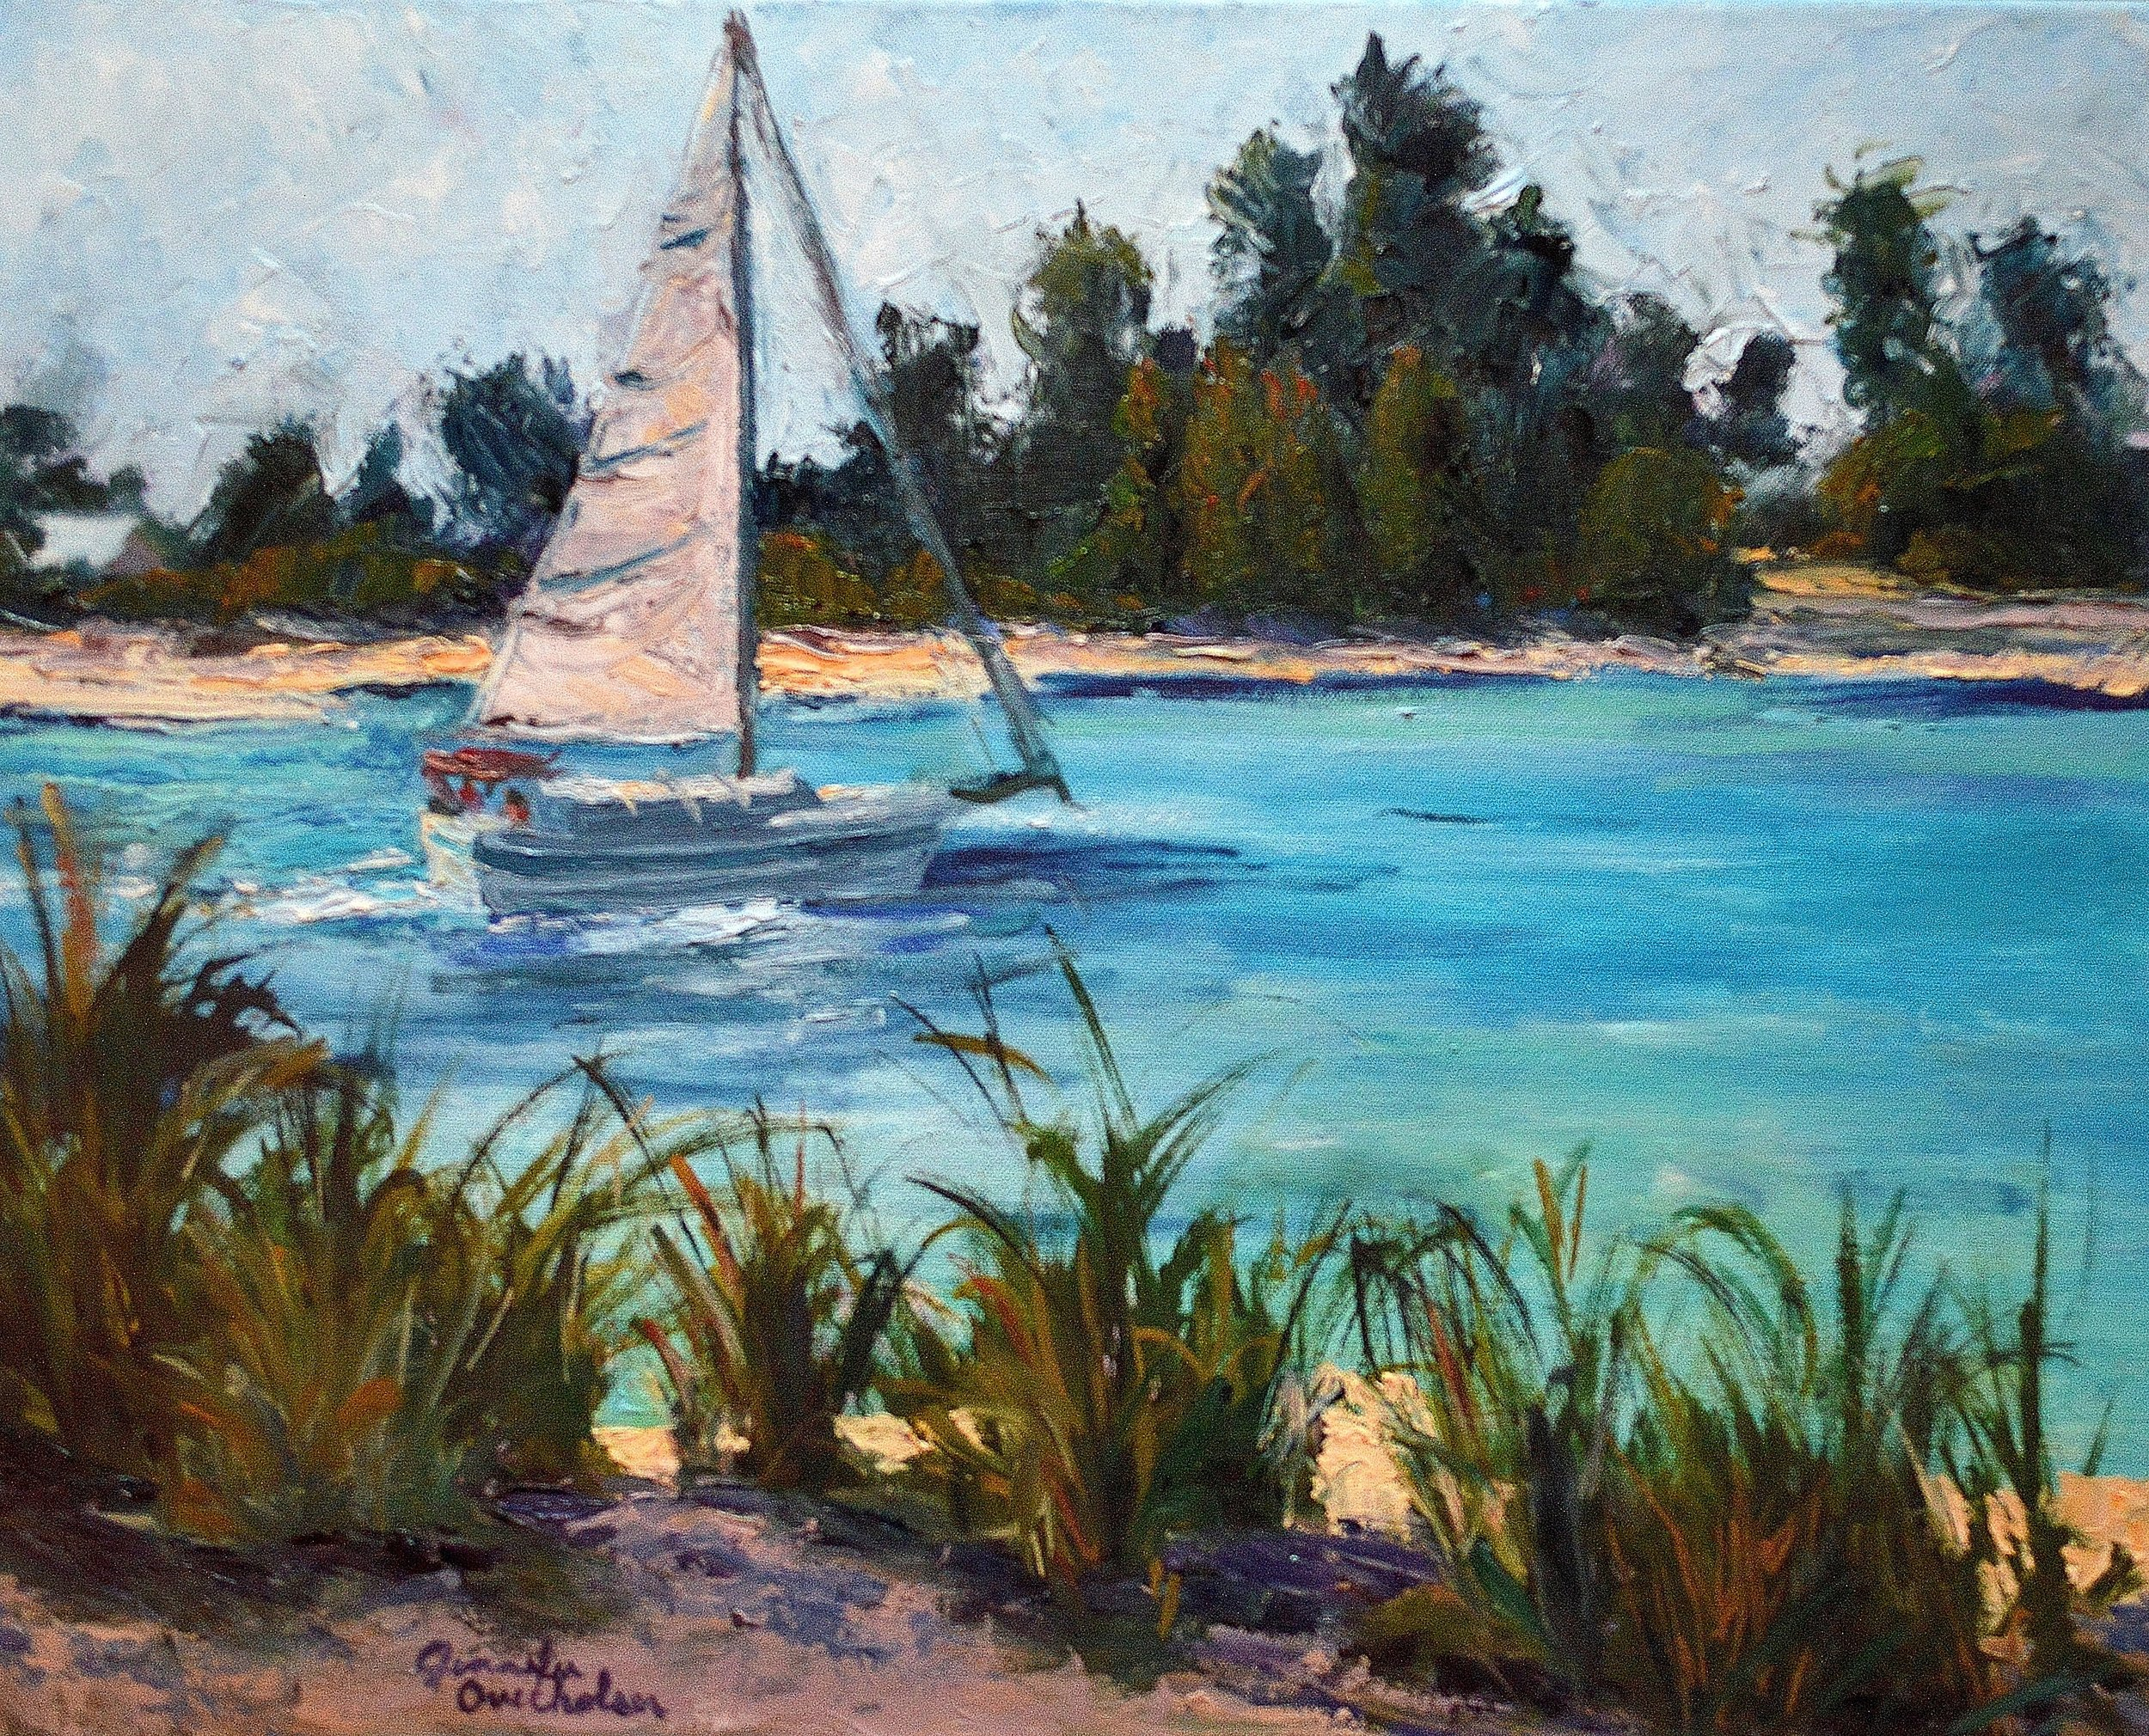 Solo show announcement! - Please join us for an artist reception July 13th, 1:00 - 3:00 at the Conneaut Arts Center, located at 1025 Buffalo Street, Conneaut, Ohio.This solo show features Impressionist paintings of our current Ohio landscapes and scenes from travels across the country. Each painting in the show represents a transition in someway, whether it be a new way of painting or moving from one stage of life to another. Come see the vibrant colors of the paint in person and hear stories first hand from the artist. See you there!